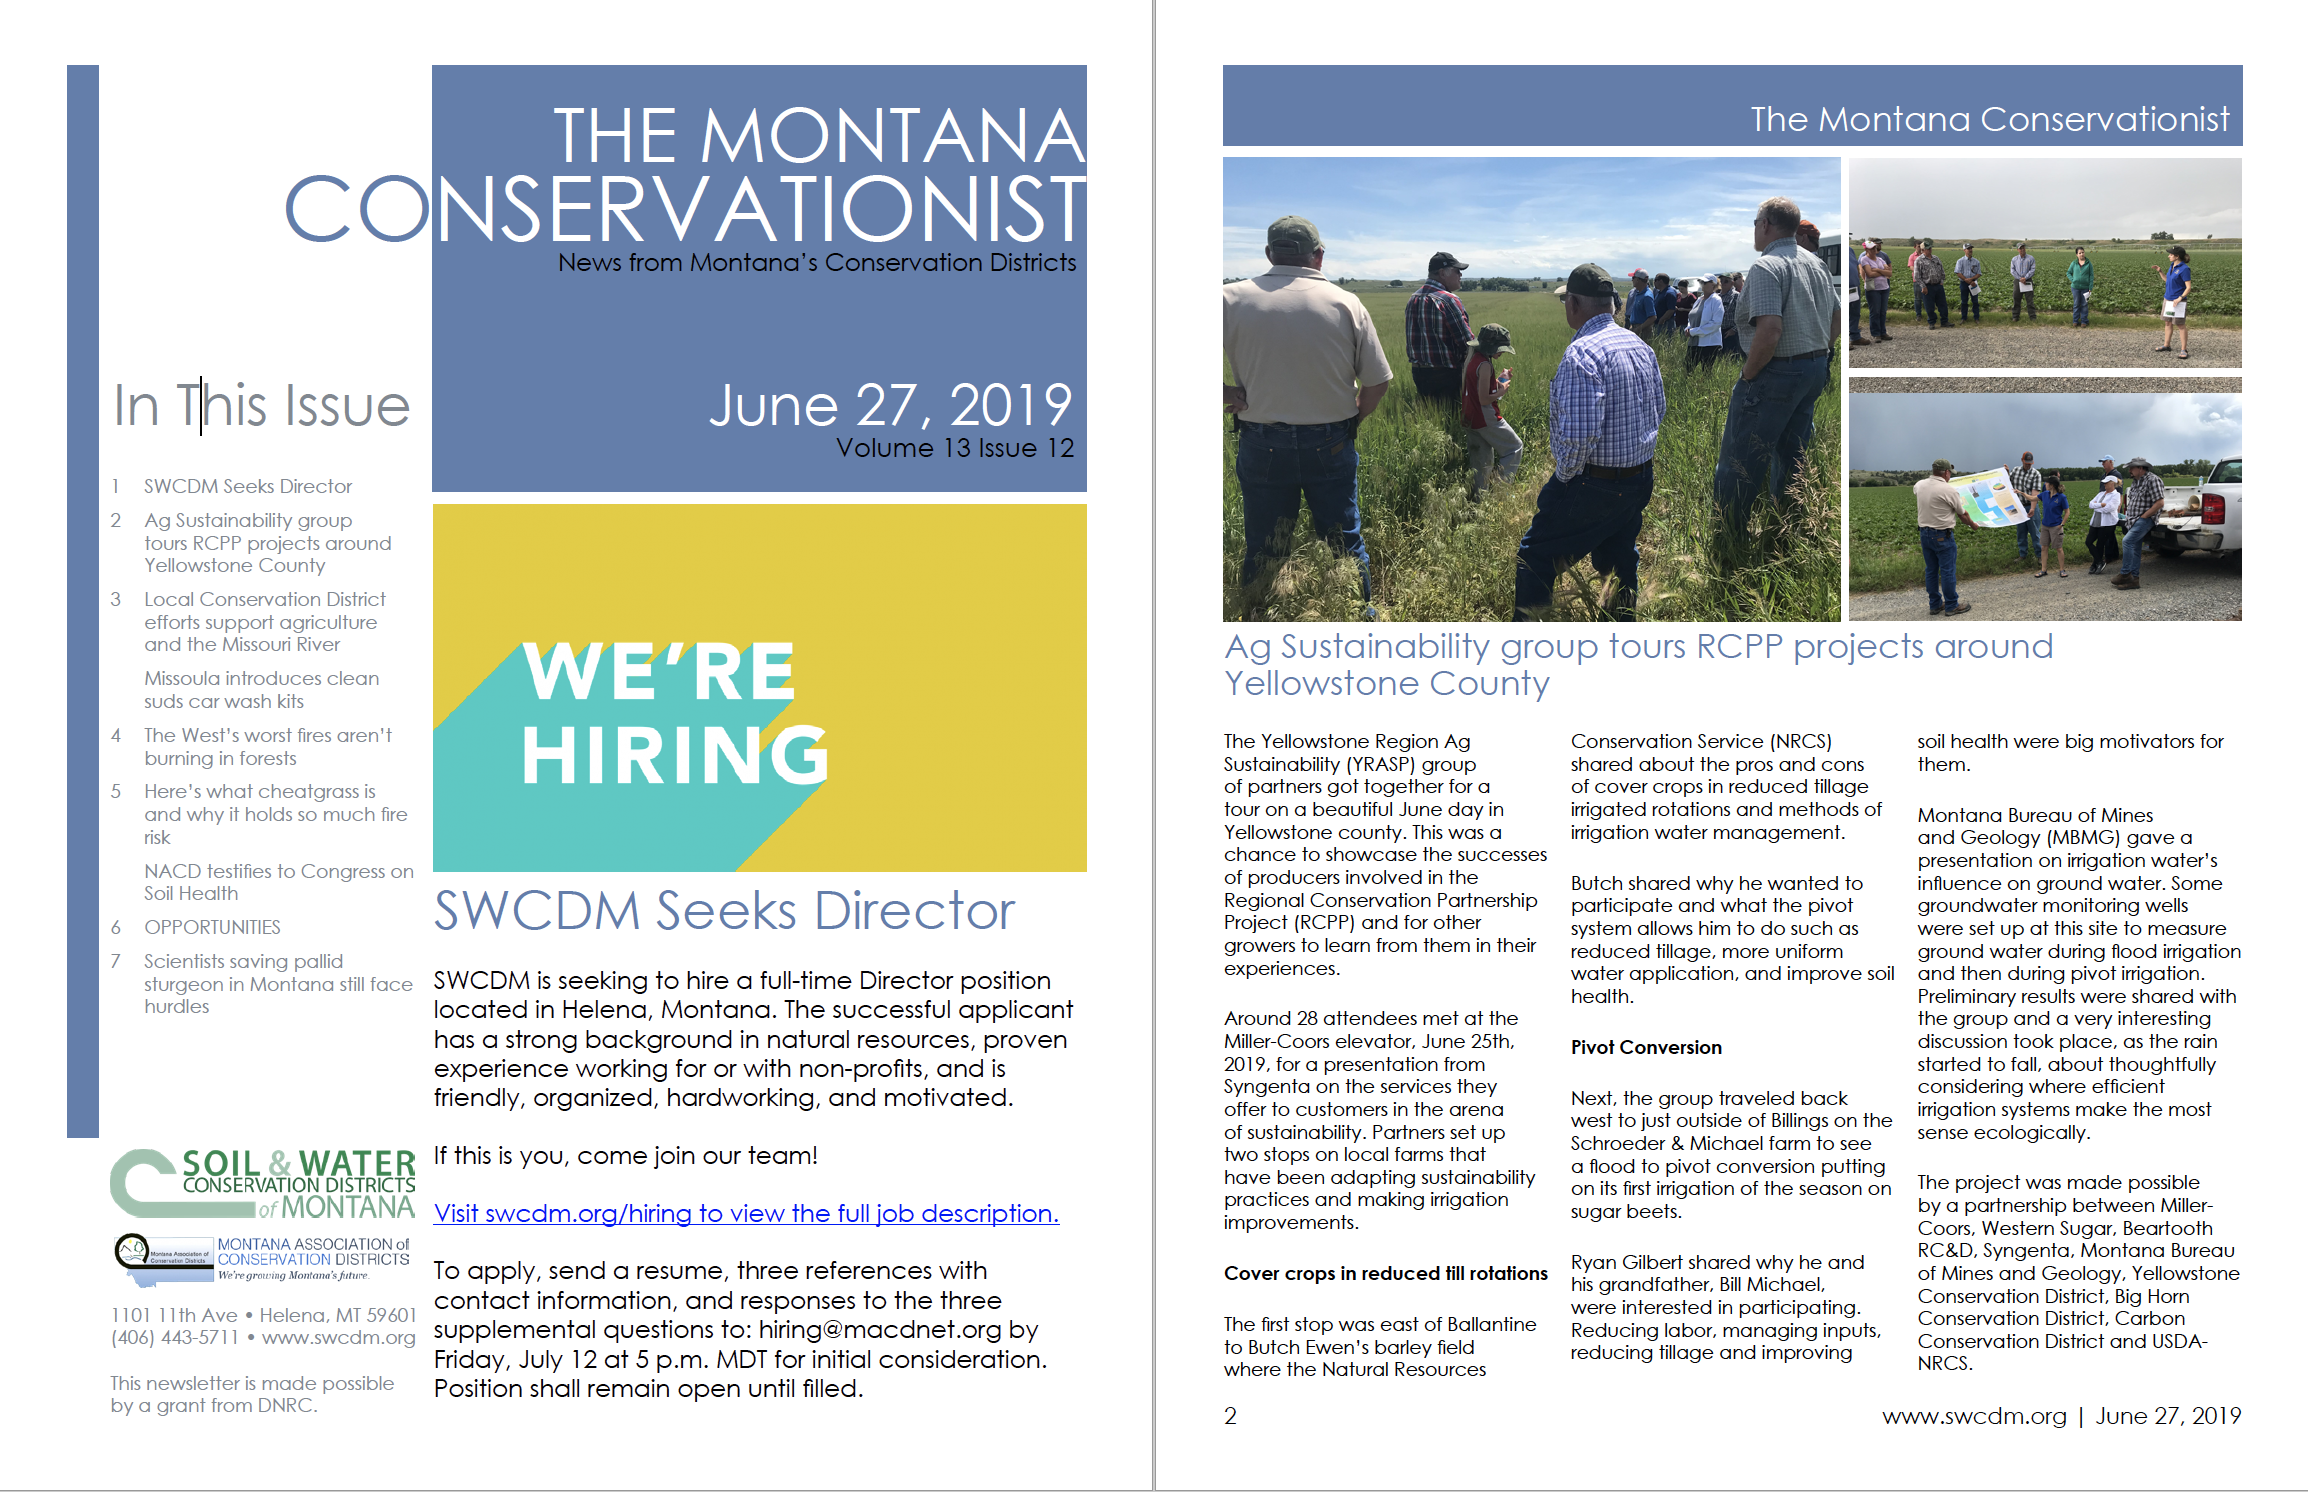 The Montana Conservationist, June 27